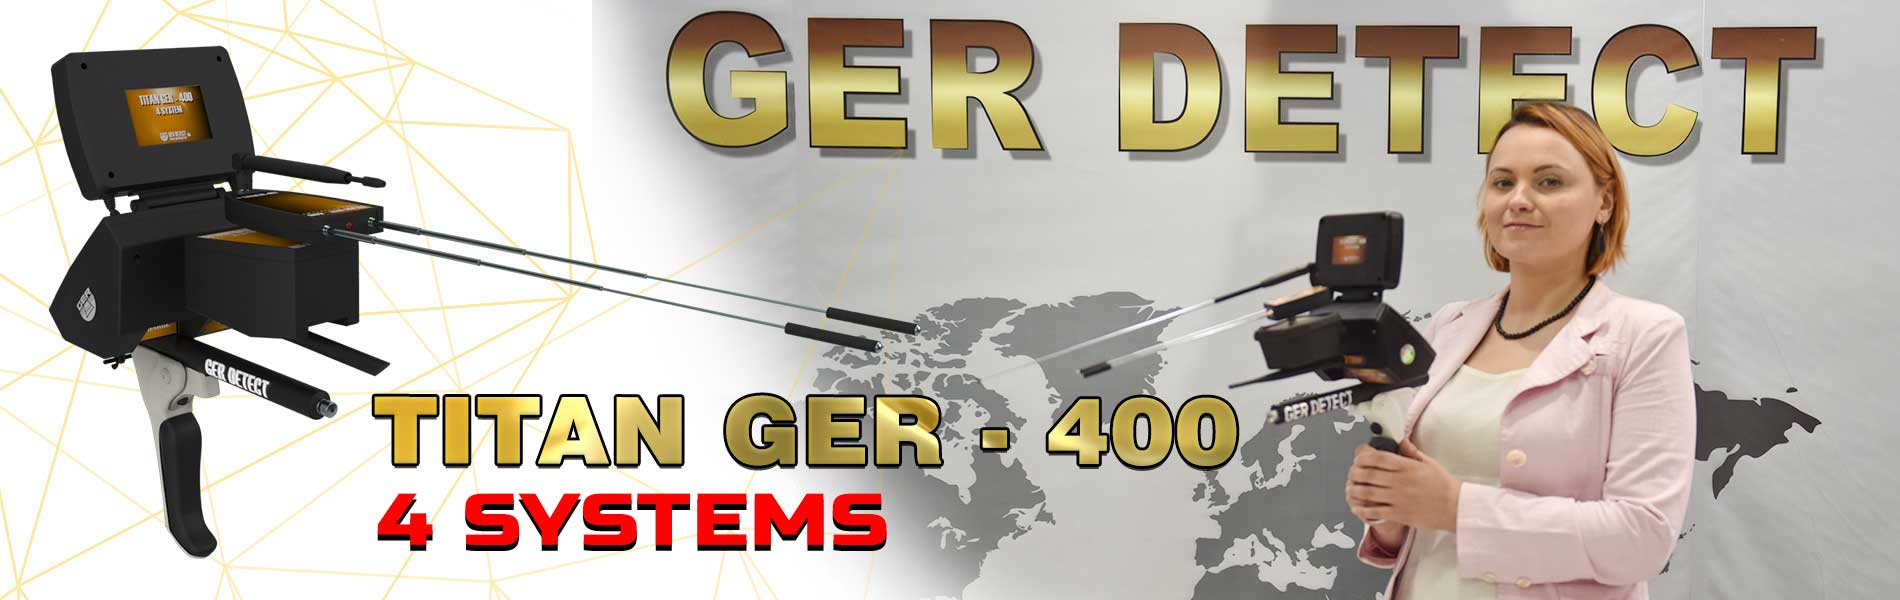 titan-ger-400-gold-finder